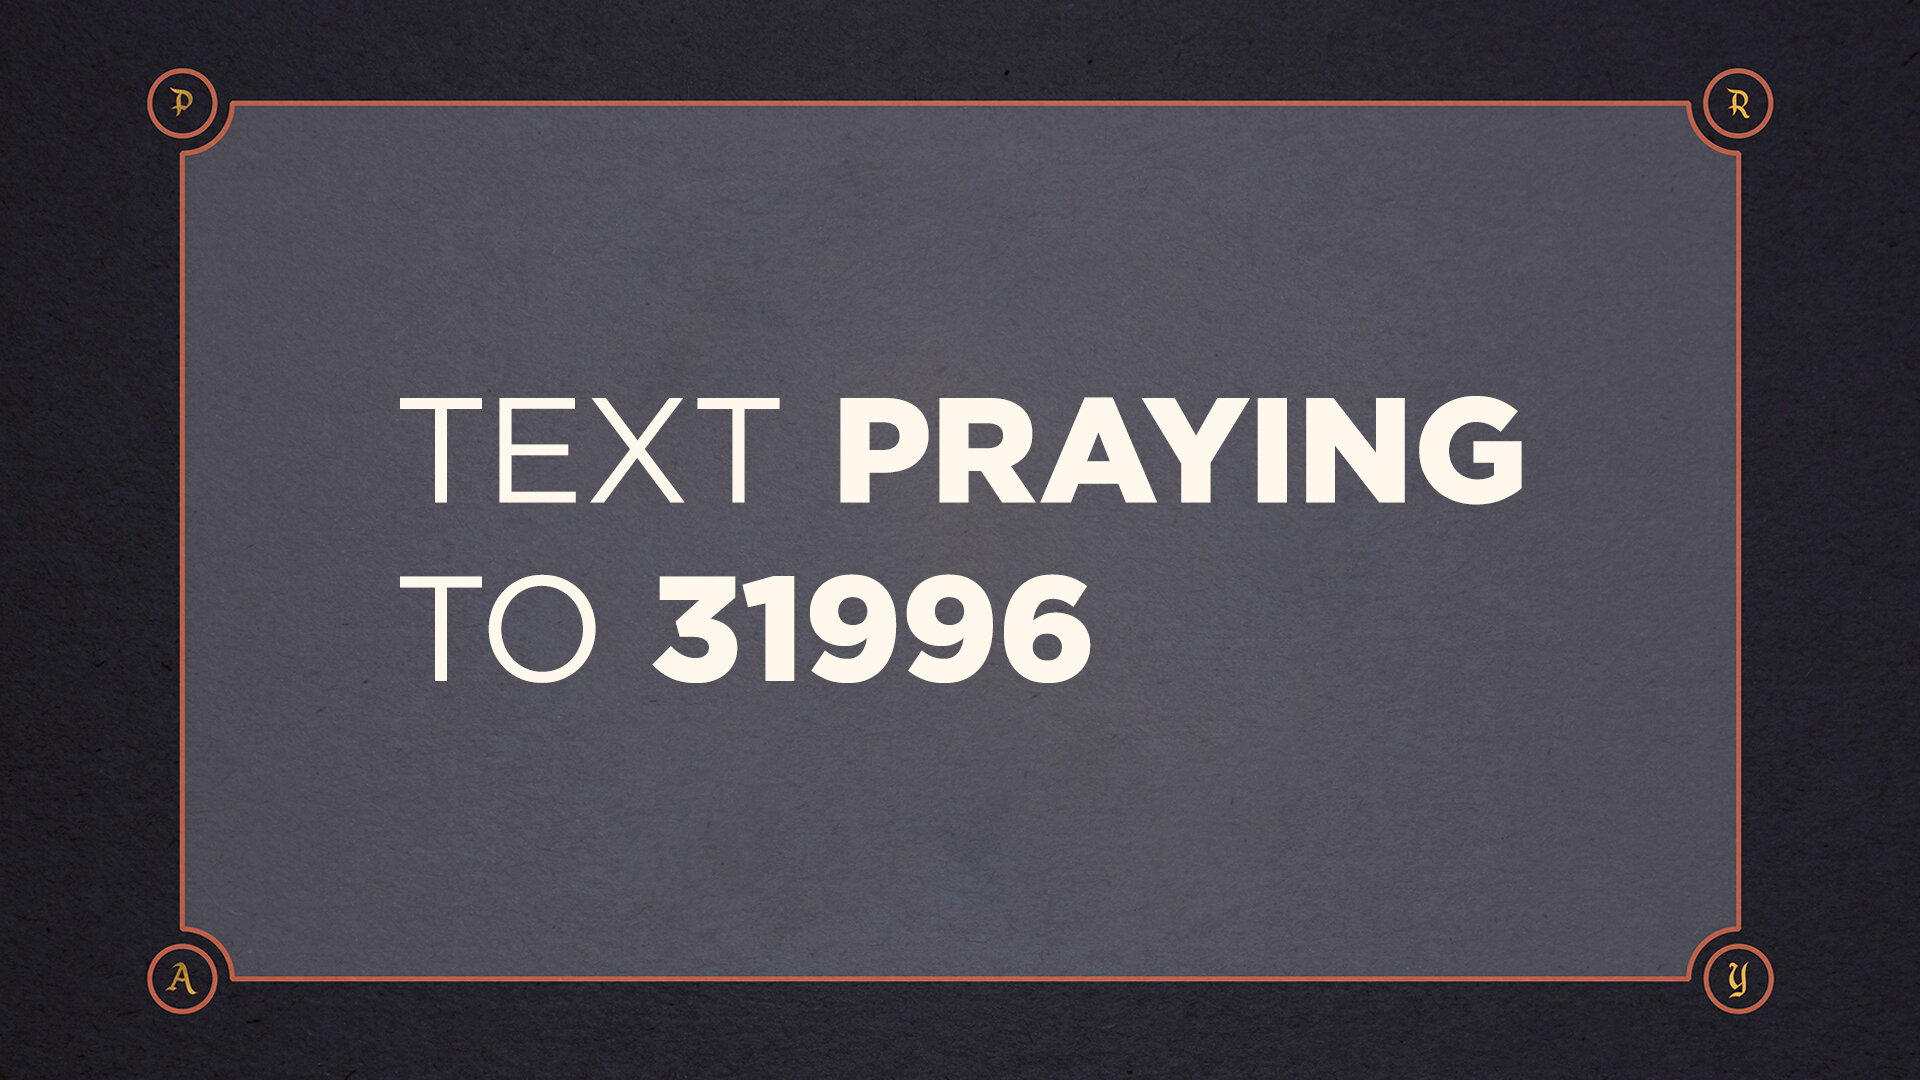 engage-praying-31996_fullscreen-example.jpg